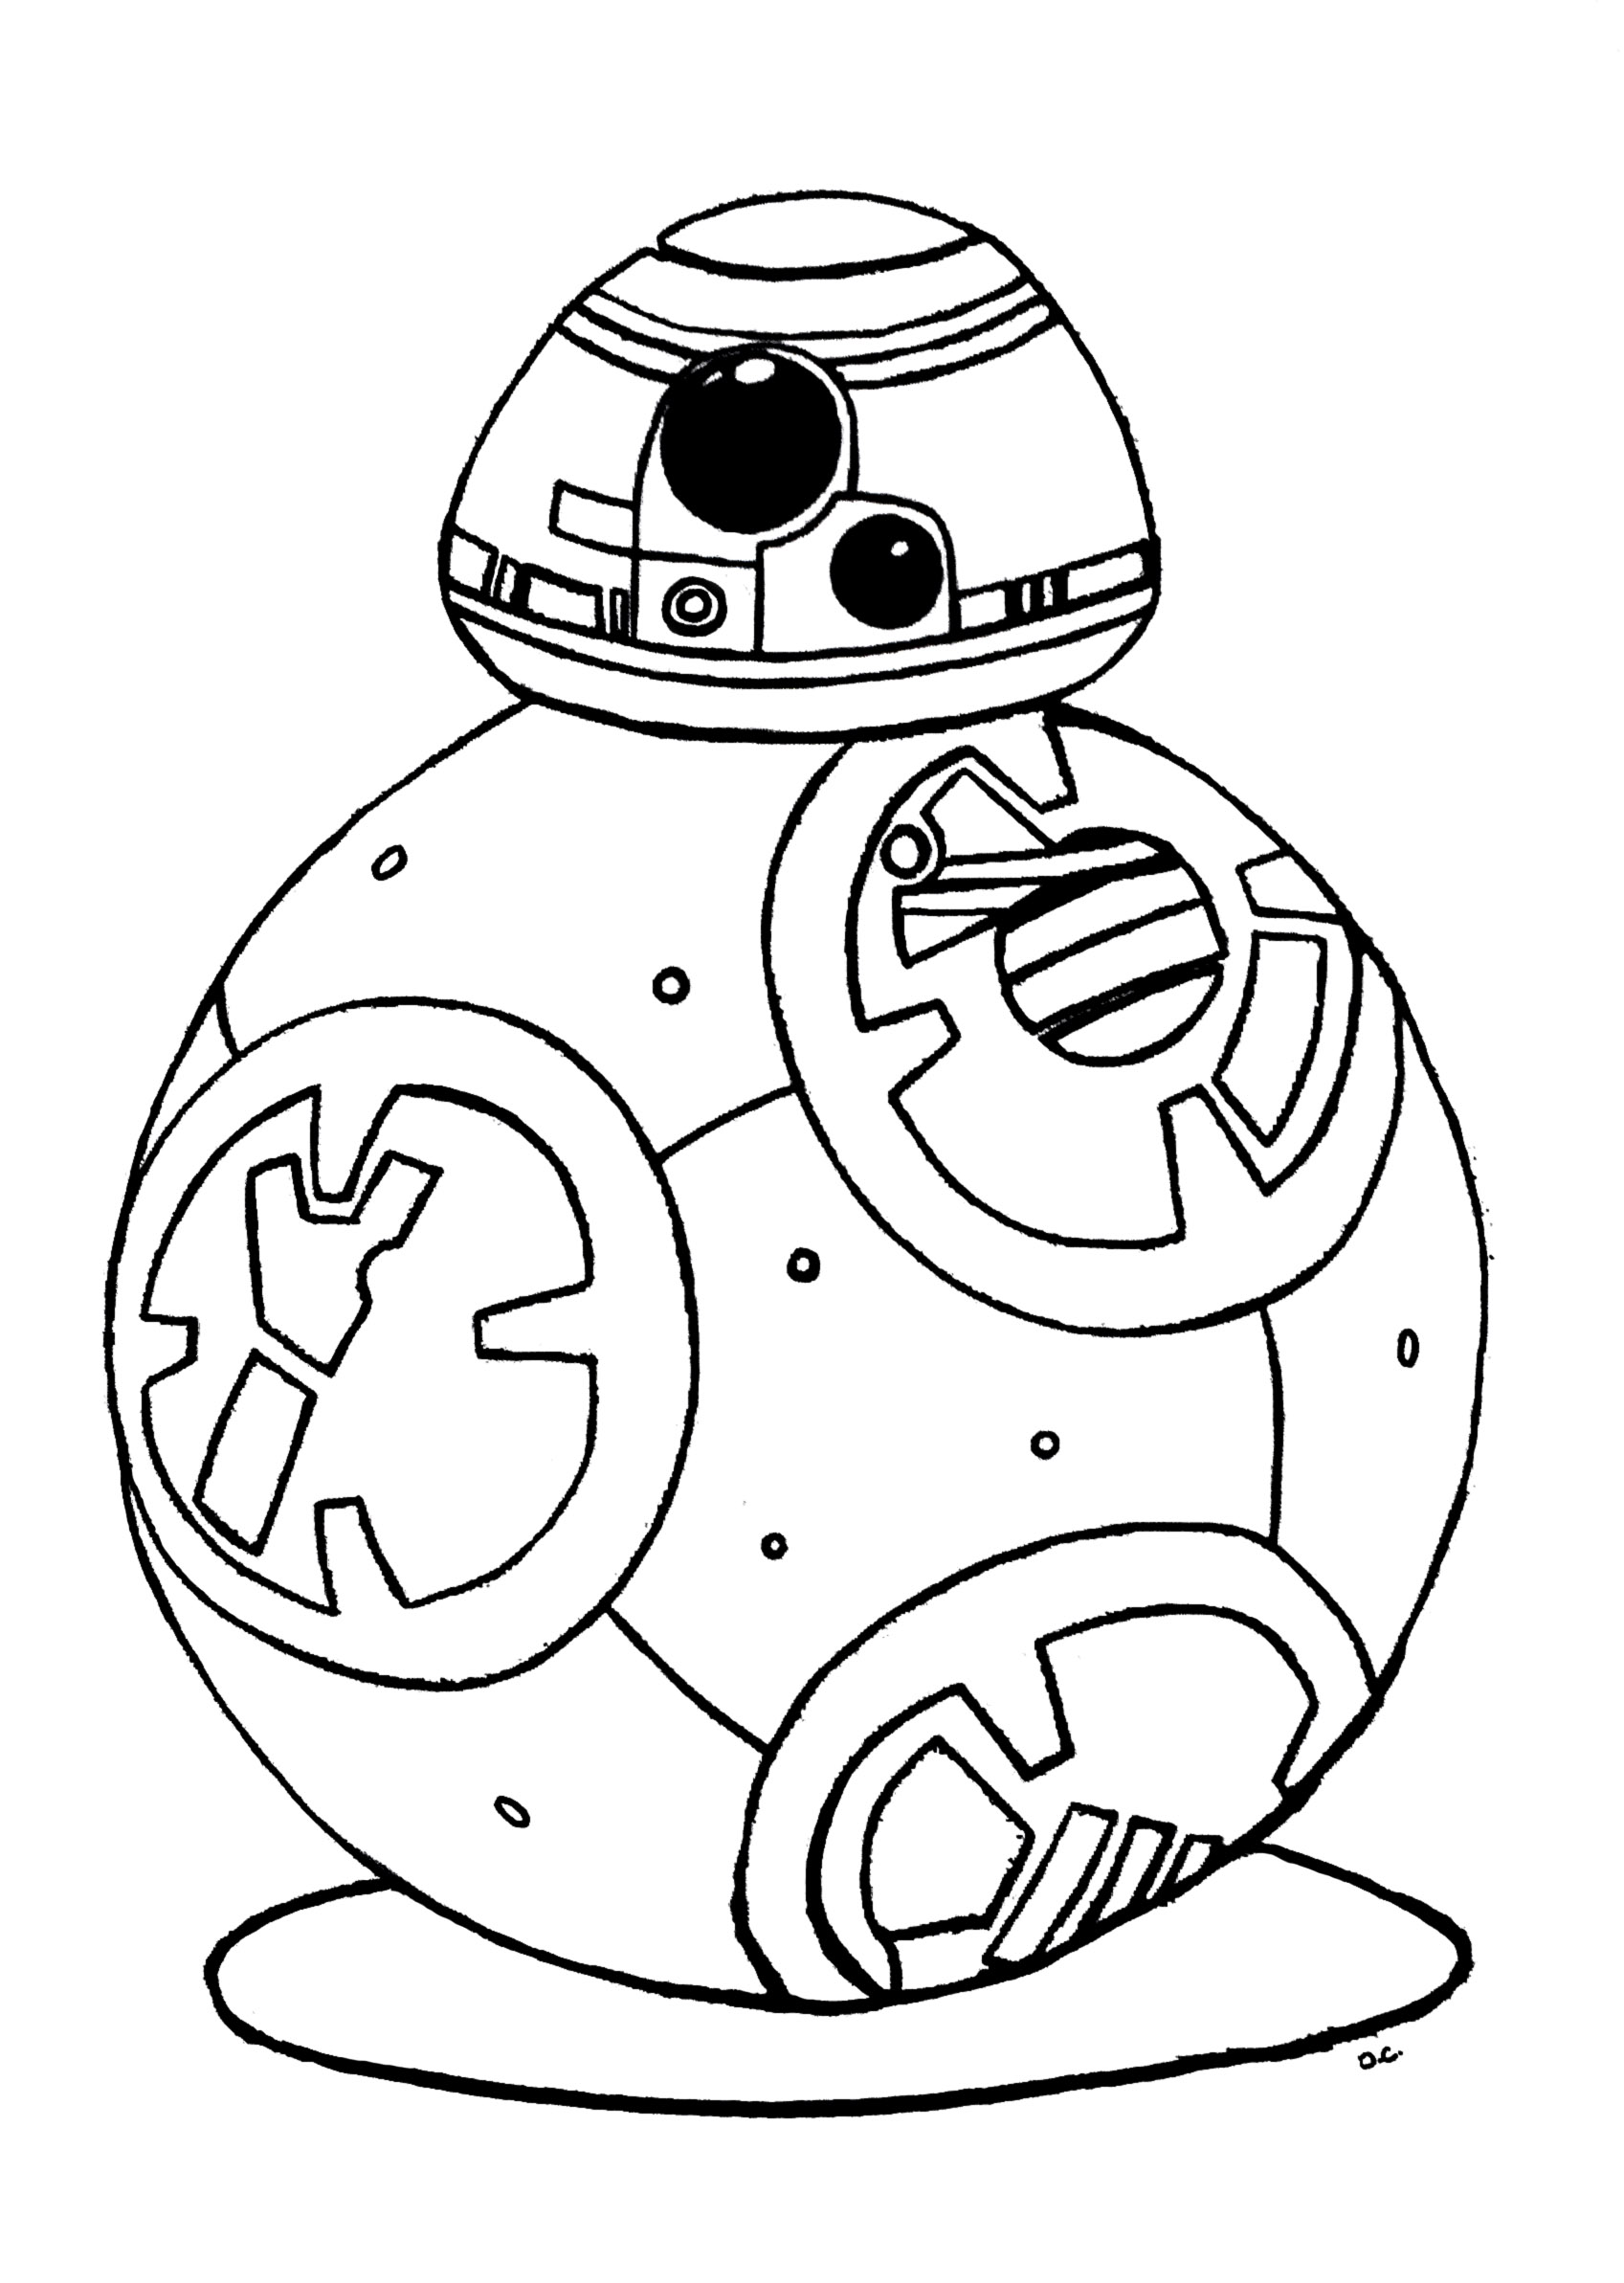 coloring sheet star wars coloring pages coloring pages star wars free printable coloring pages star coloring sheet coloring pages wars